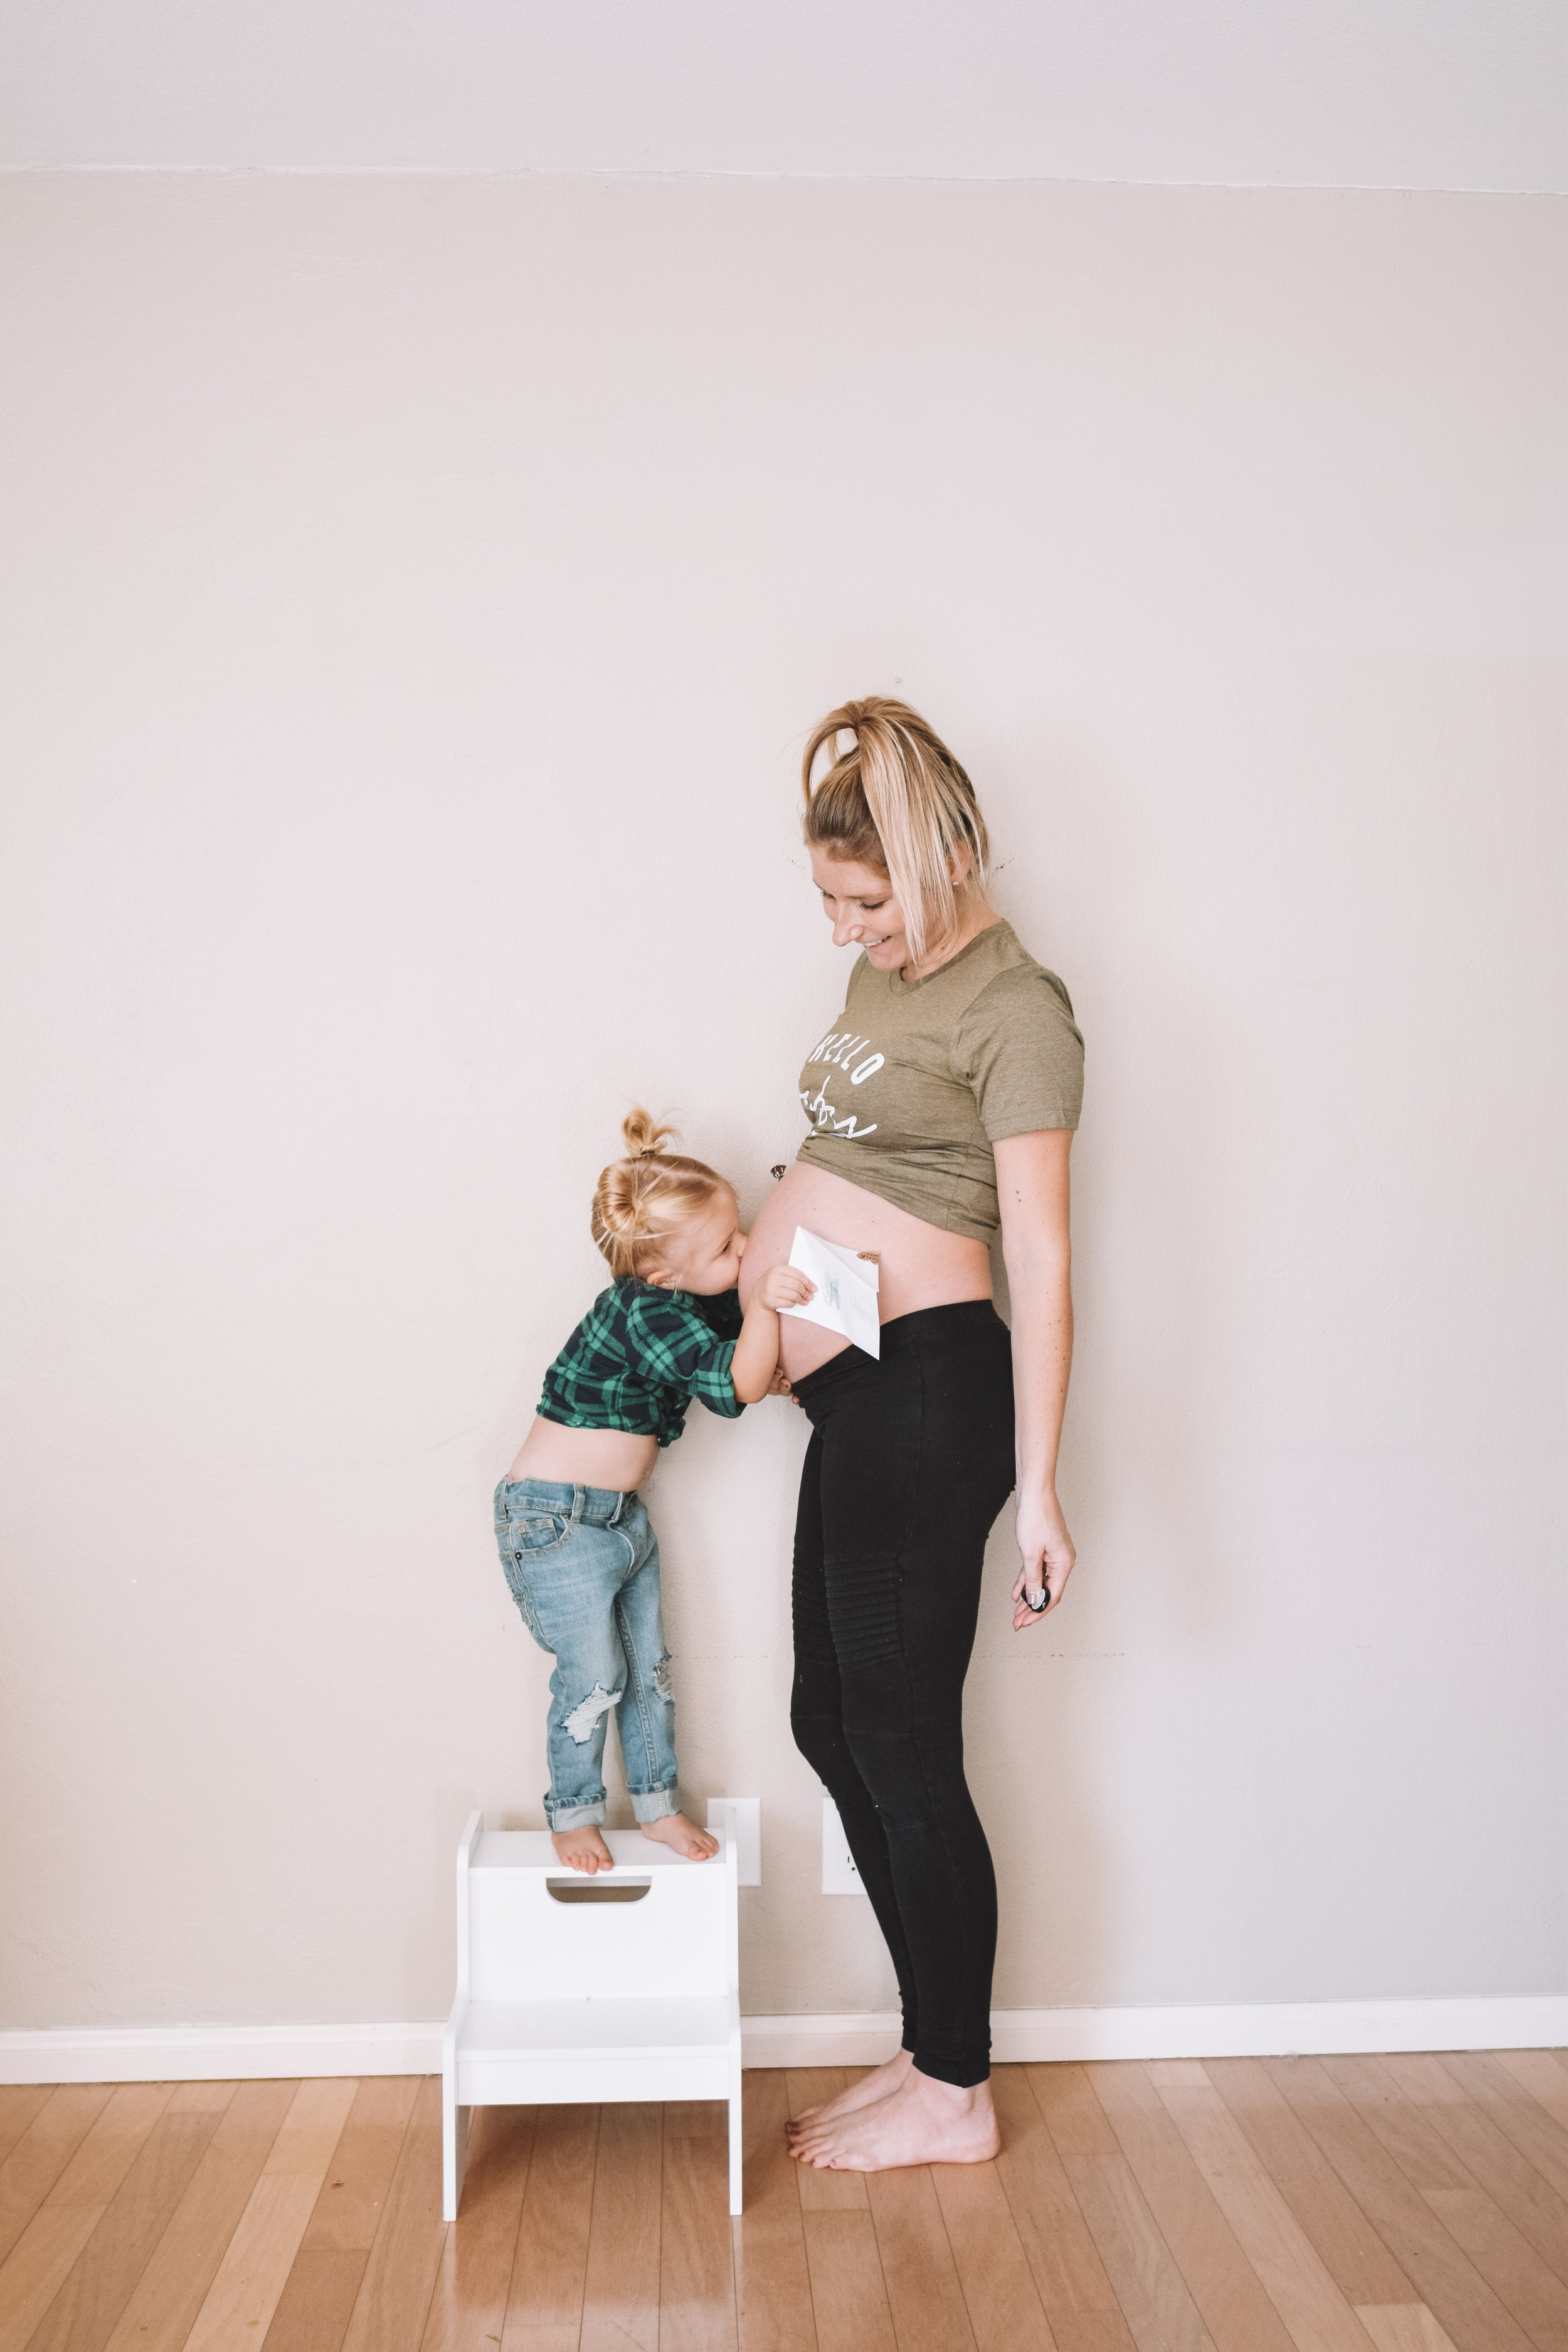 26 Weeks Pregnant Belly | Funny Pregnancy Shirt of the Week - The Overwhelmed Mommy Blogger